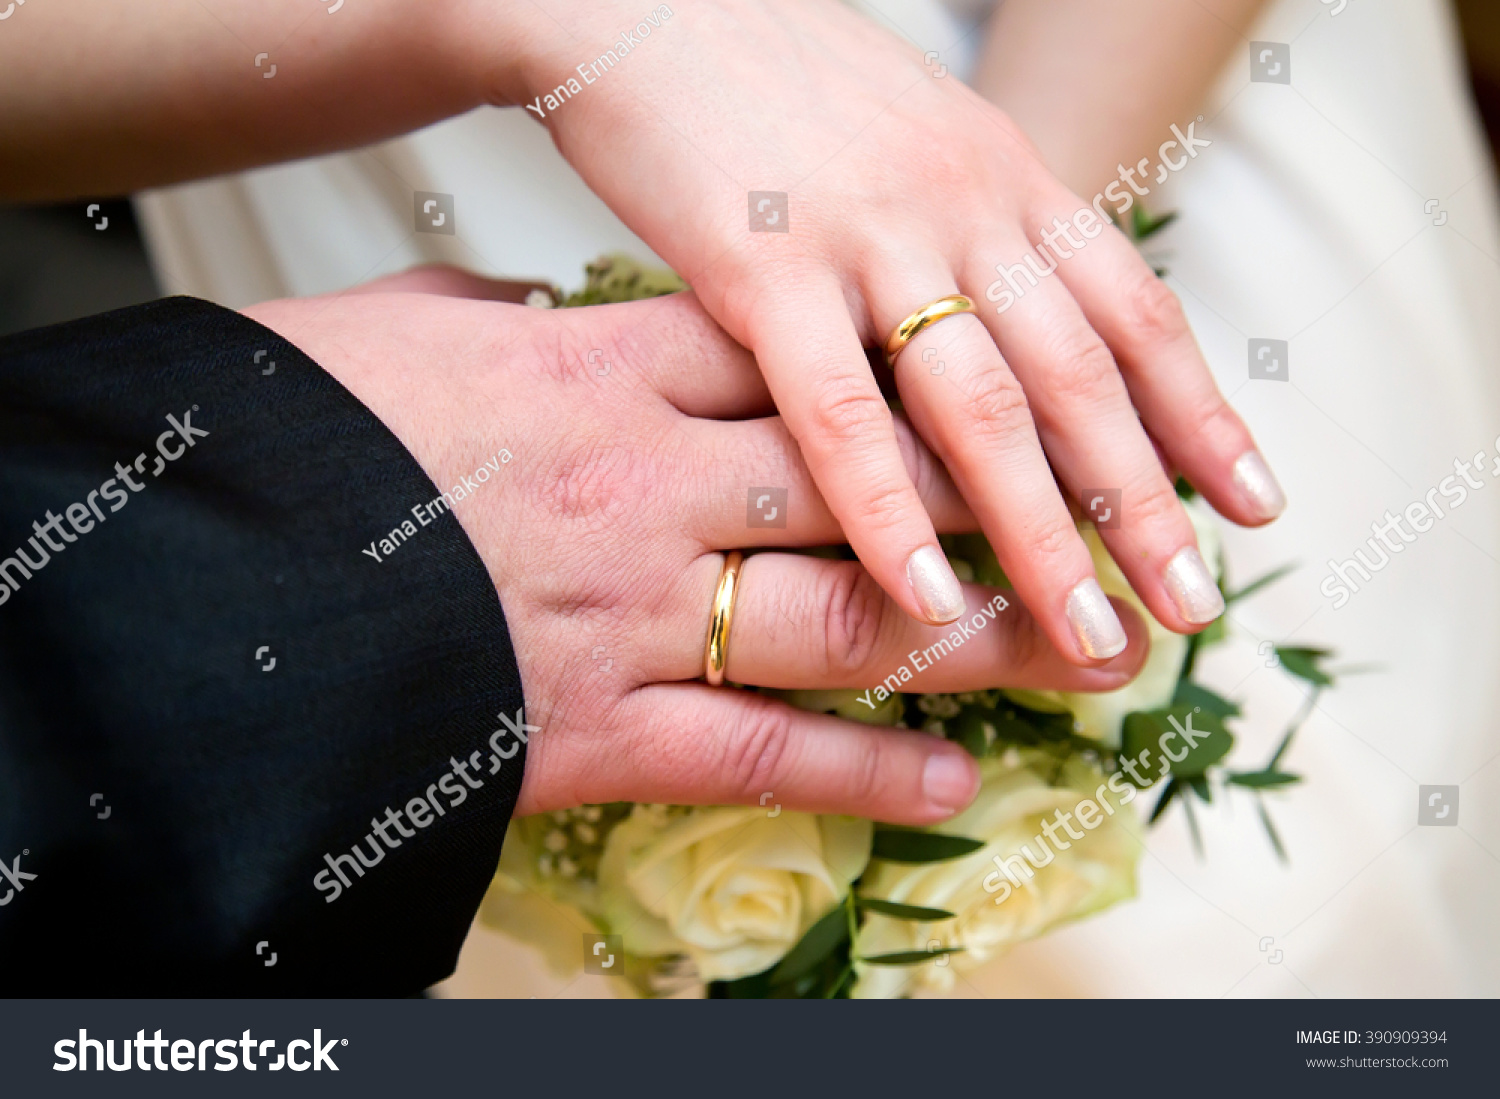 Bride Groom Hands Engagement Rings Bridal Stock Photo & Image ...